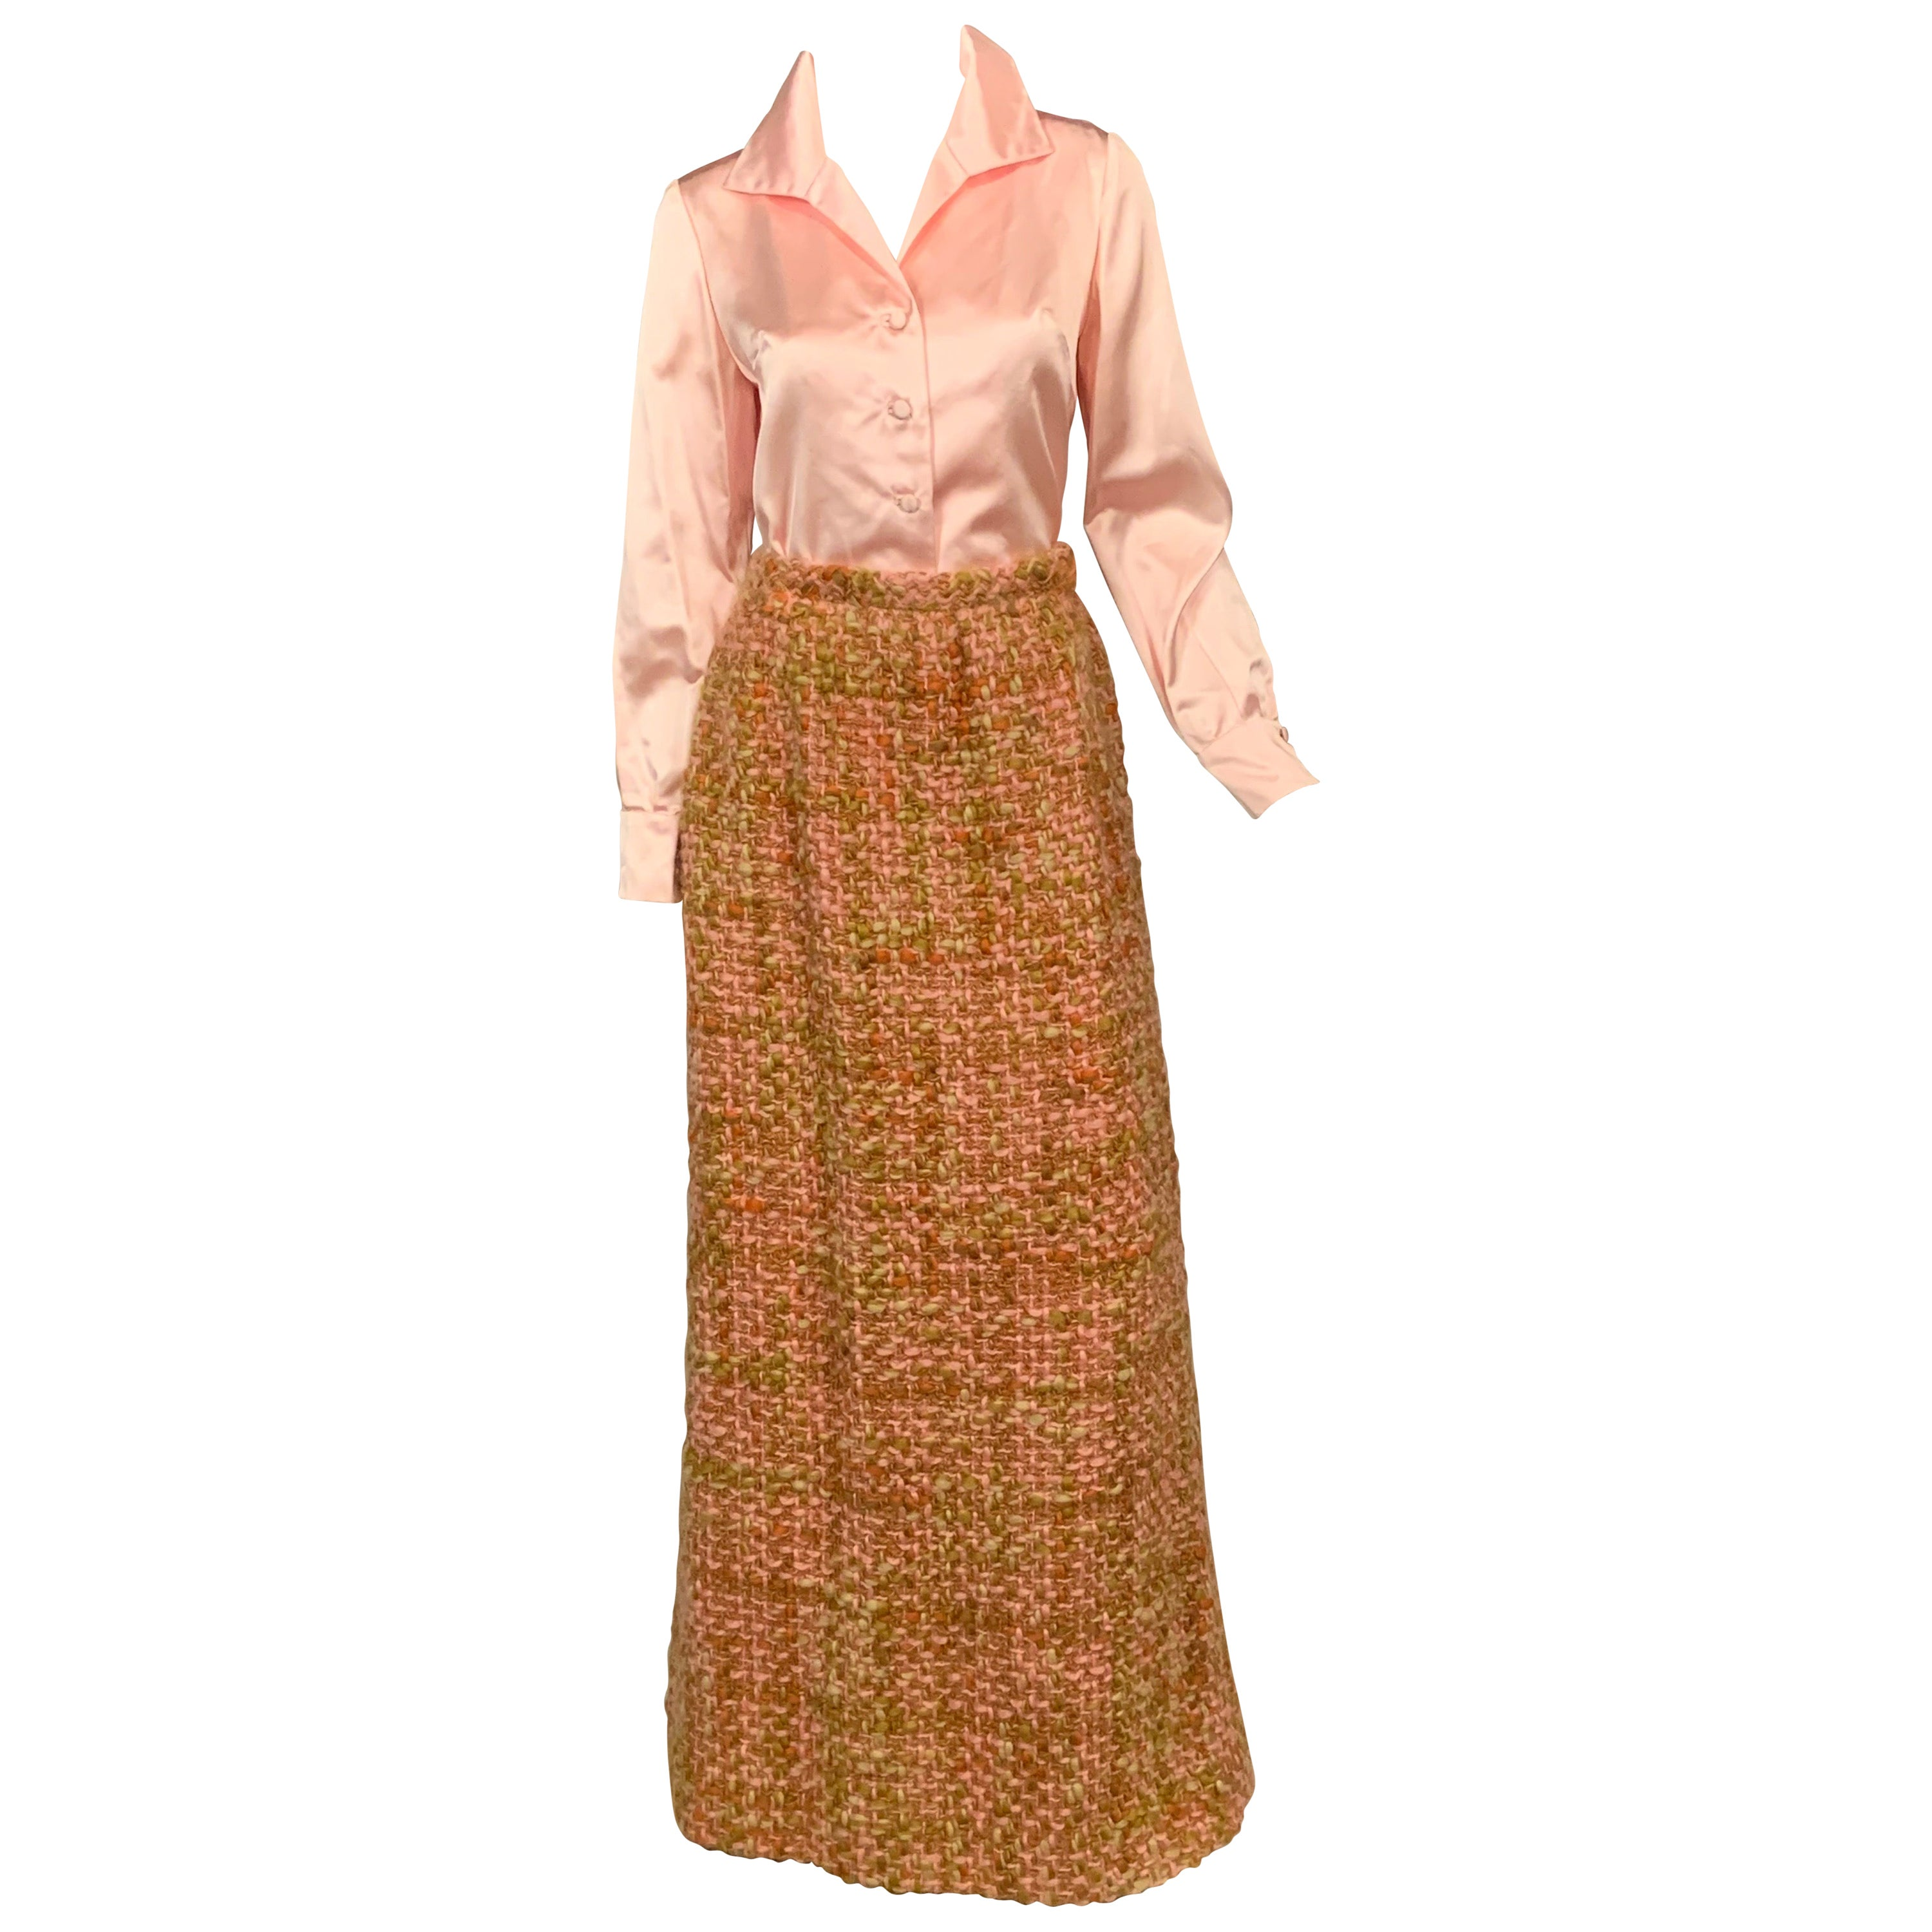 Sybil Connolly Couture Pink Silk Satin Blouse and Hand Loomed Irish Wool Skirt